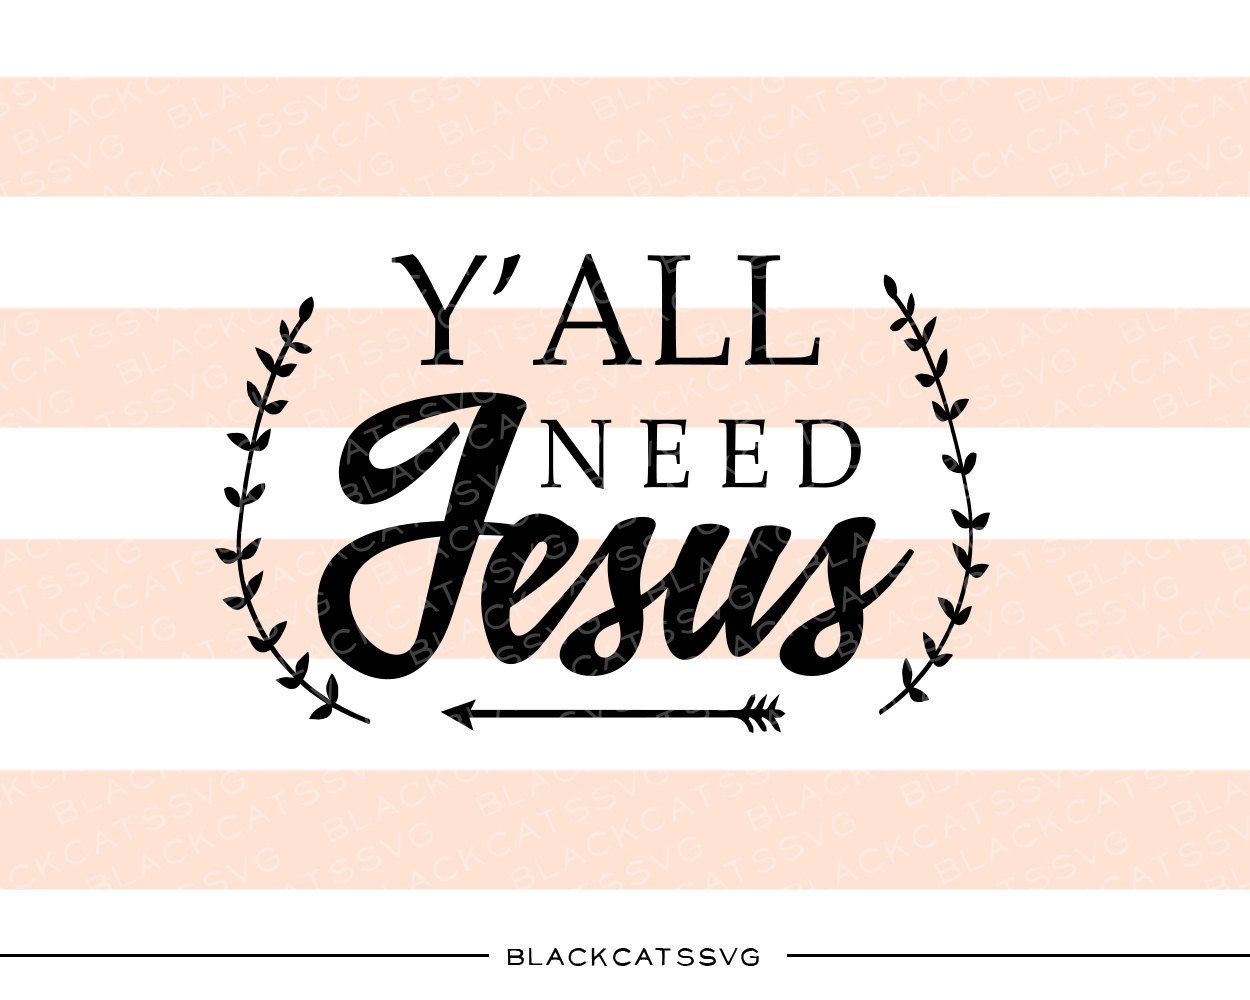 Yall need jesus clipart picture transparent stock Y\'all need Jesus SVG file Cutting File Clipart in Svg, Eps, Dxf, Png for  Cricut & Silhouette Tiny destroyer svg picture transparent stock